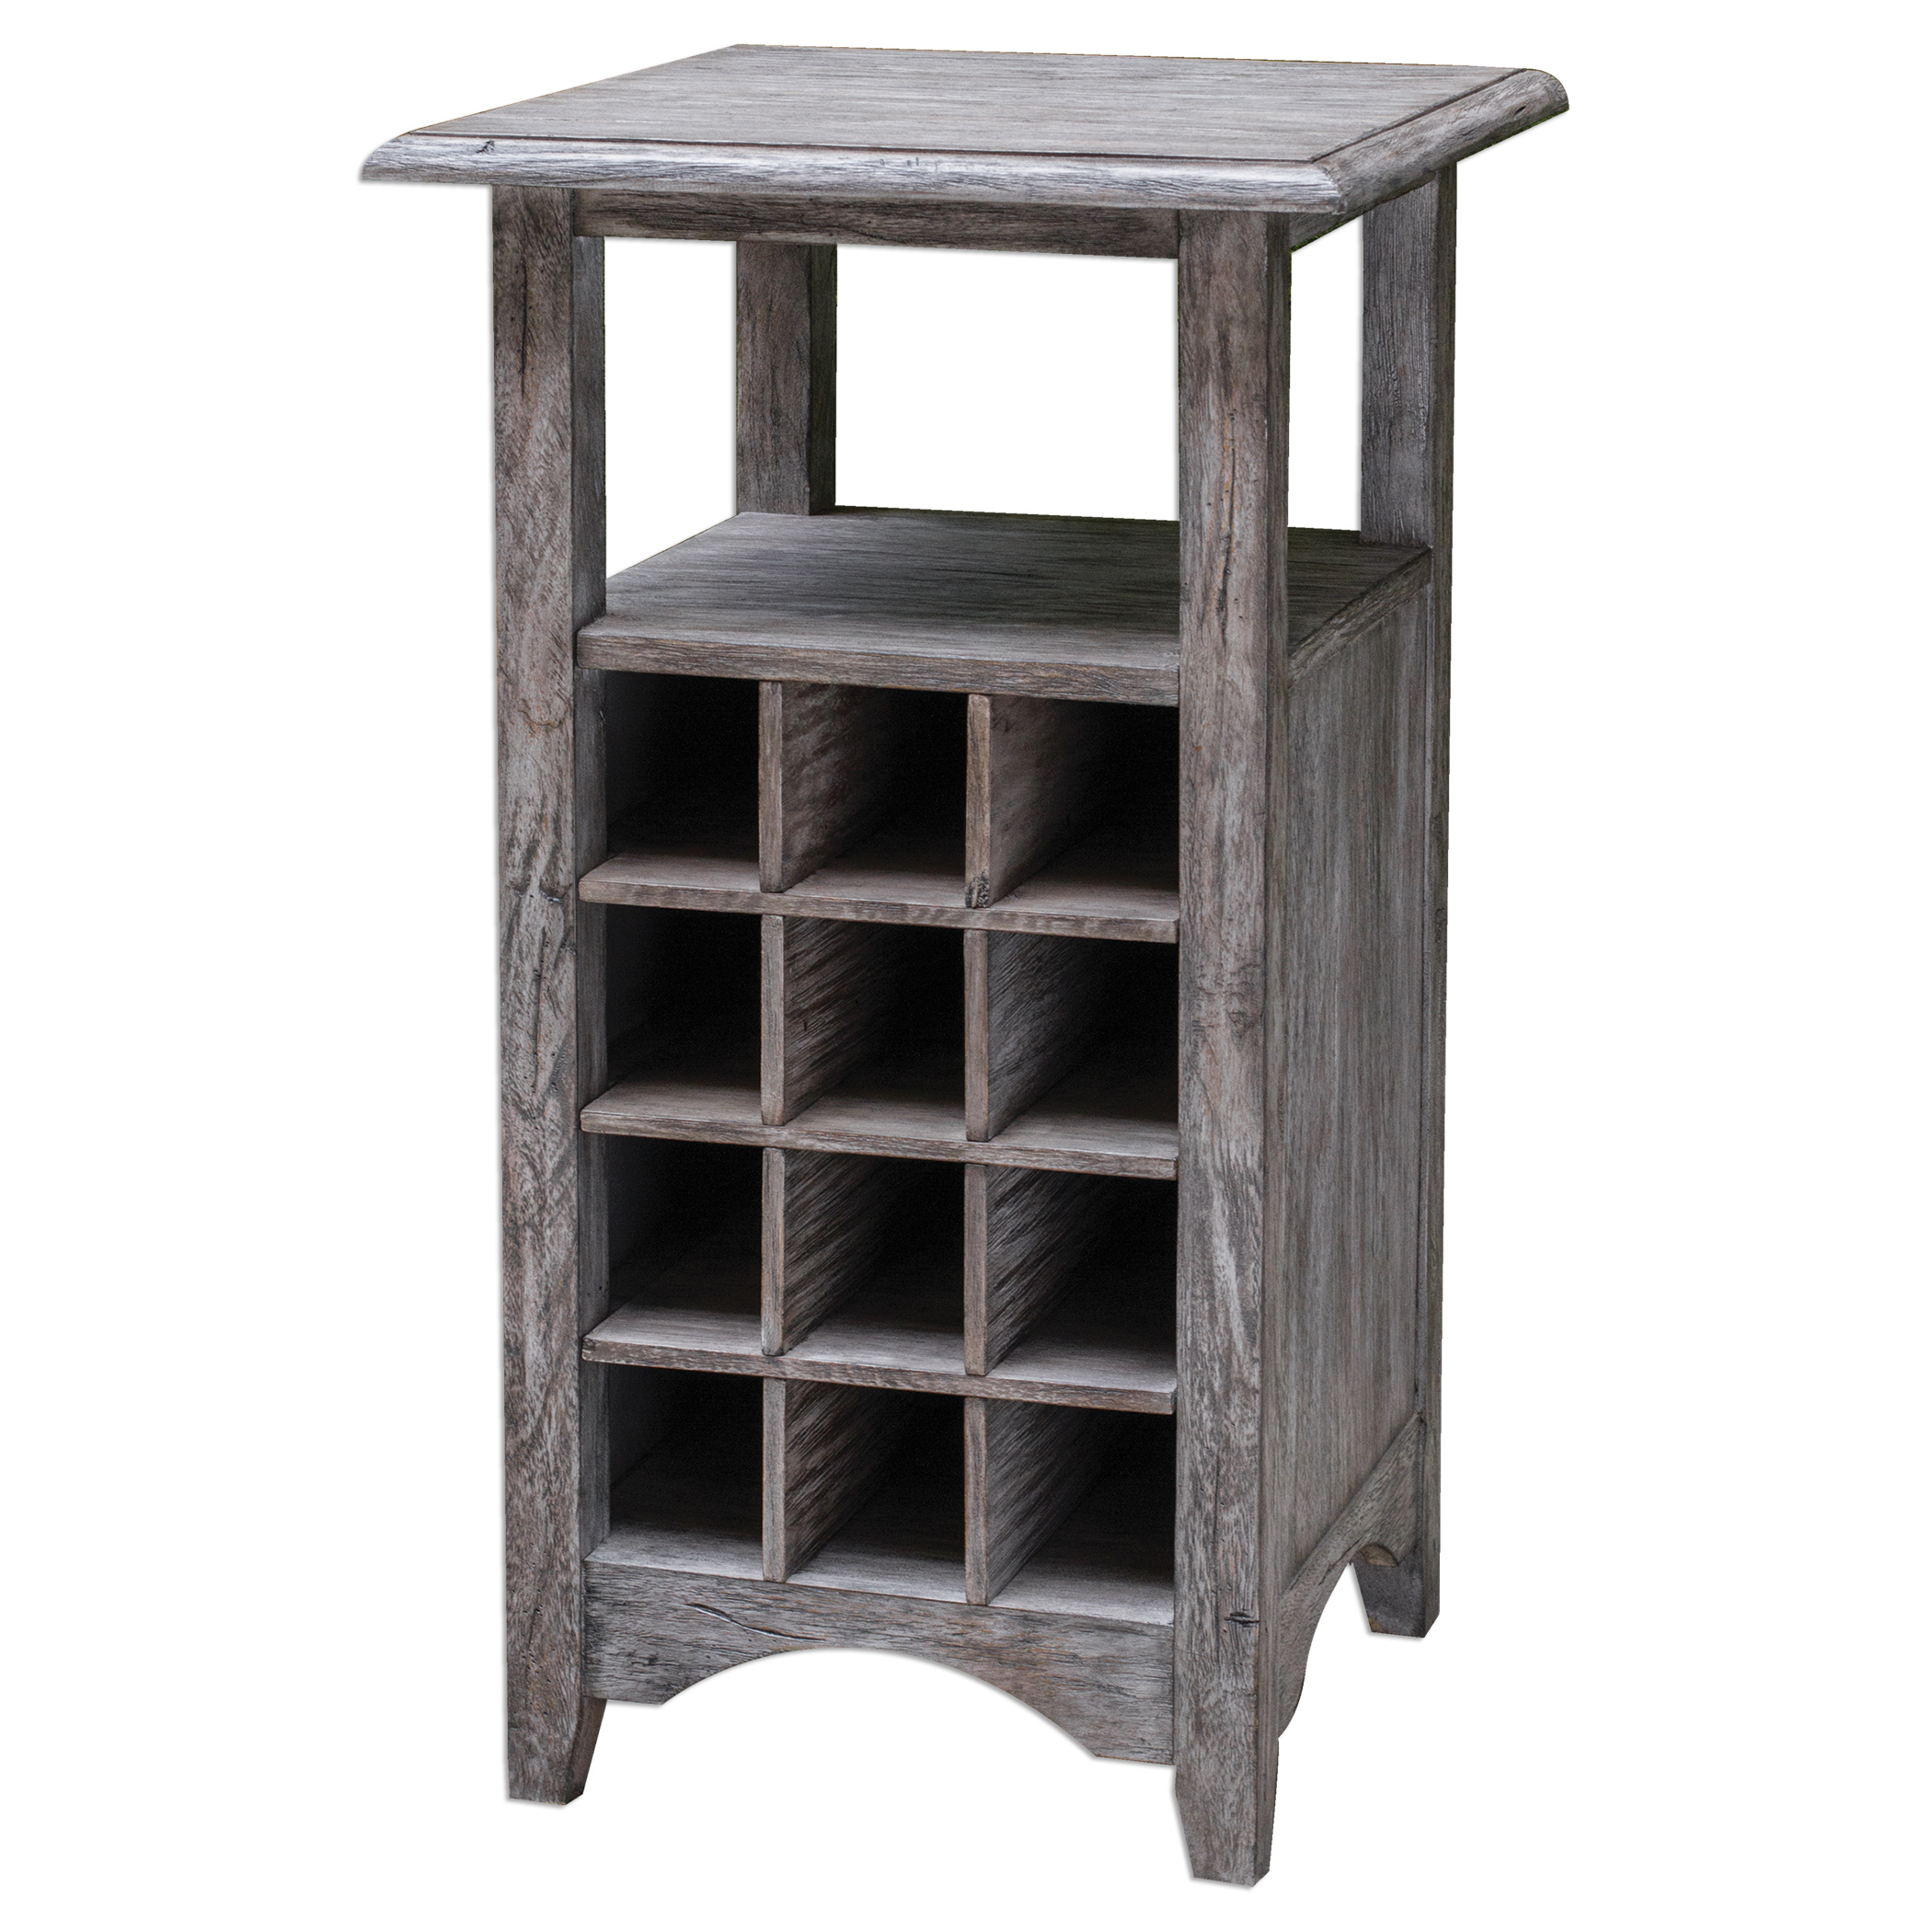 Uttermost Accent Furniture Tereza Wine Storage Table - Item Number: 25698